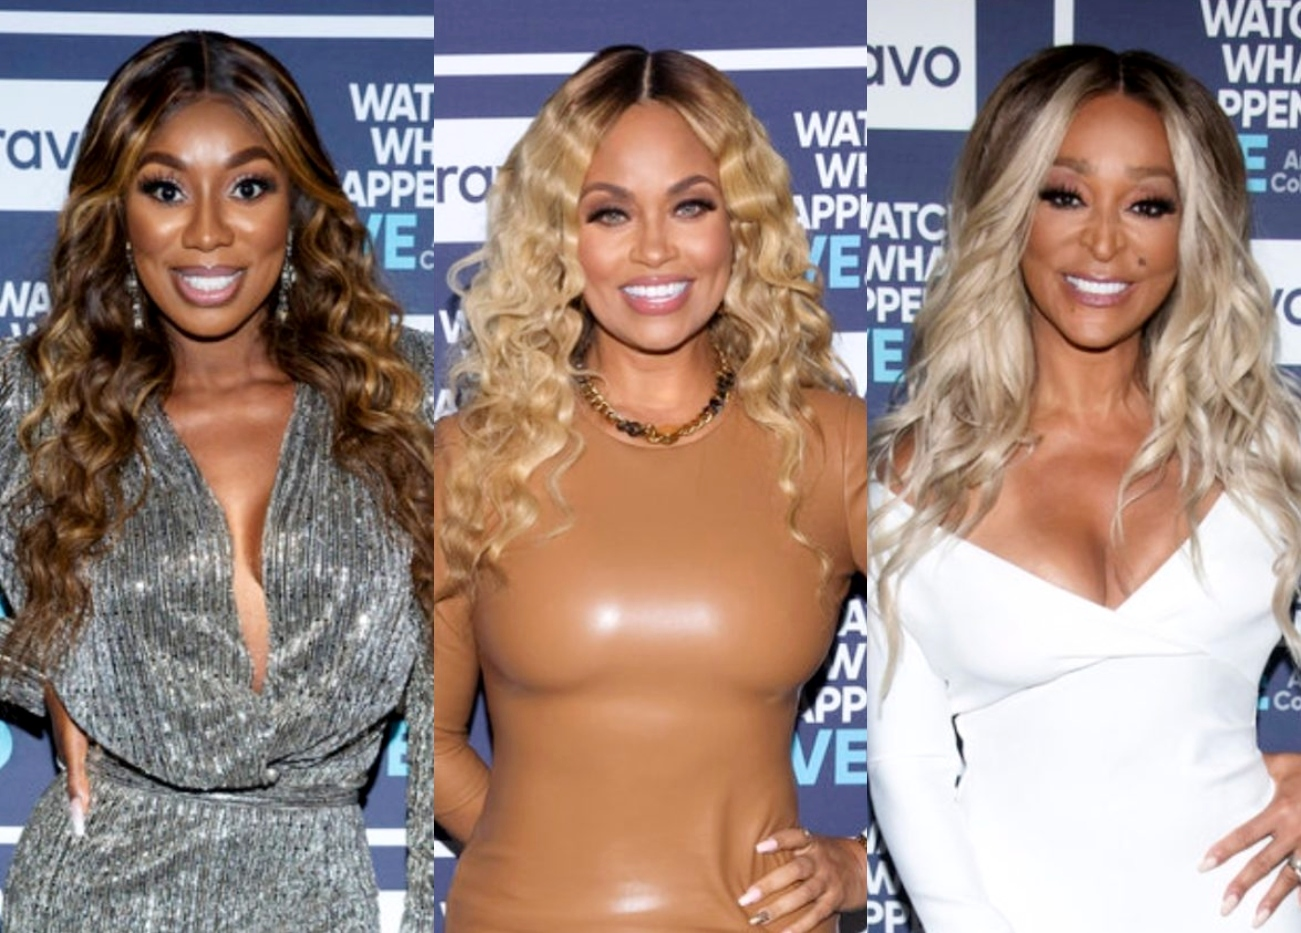 """RHOP's Dr. Wendy Osefo Denies Gizelle Bryant Brought Up Eddie Rumors Off-Camera, Shades Her """"Misery"""" as Karen Huger Wonders What Gizelle Knows About Relationships"""